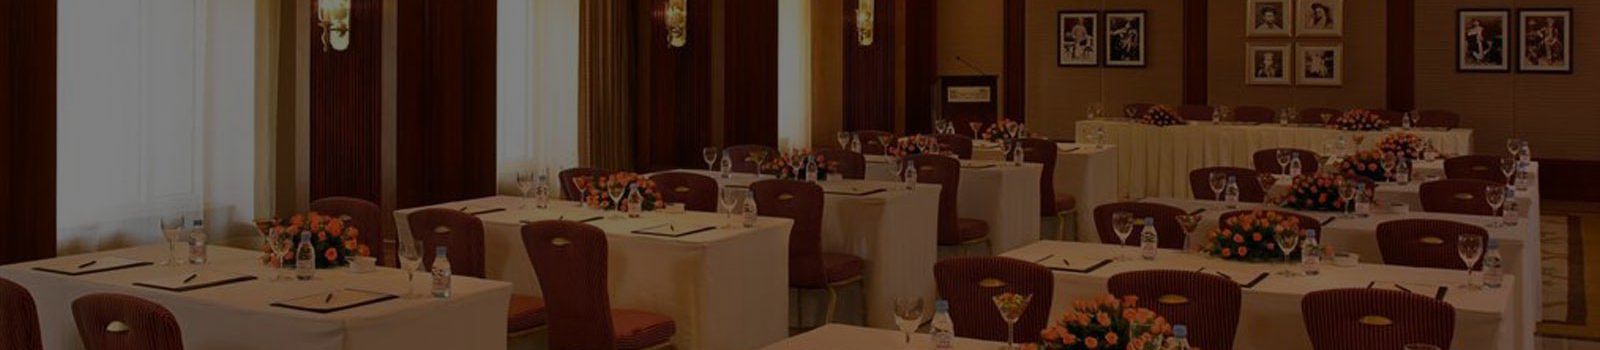 Meeting & Conference Room at ITC Maratha